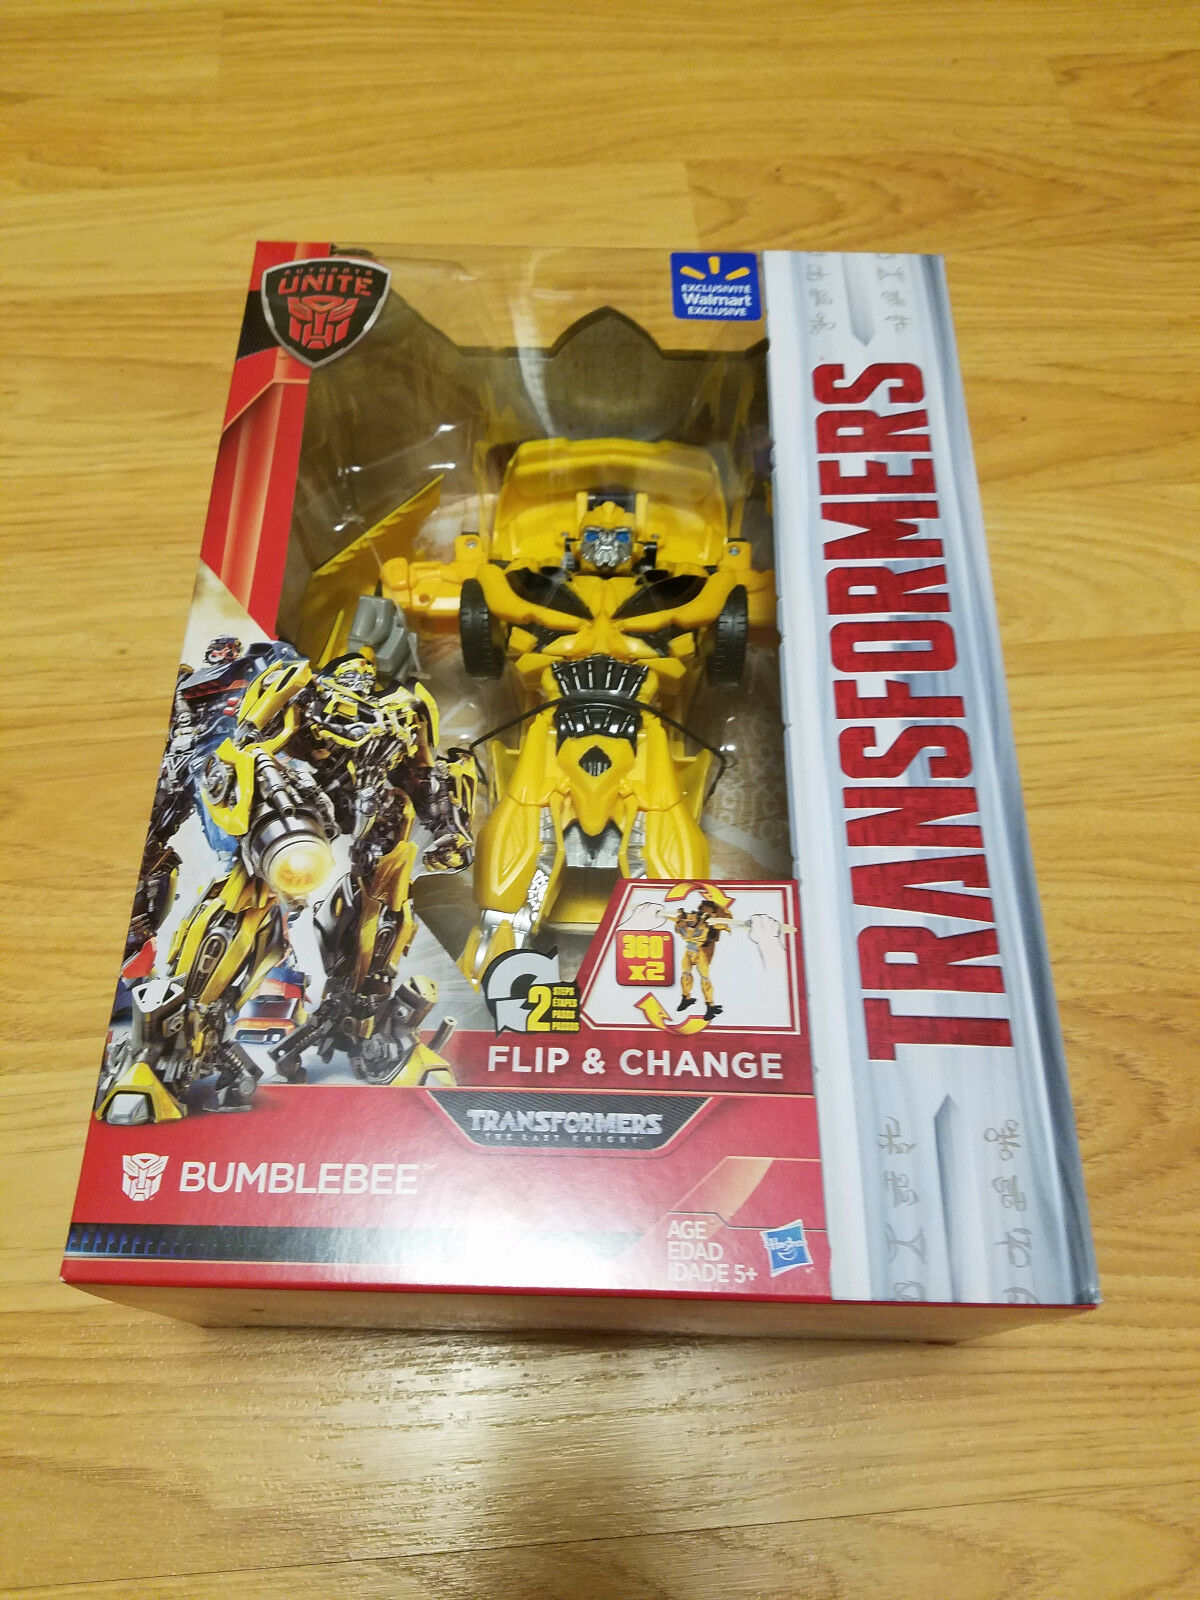 Transformers THE LAST KNIGHT Flip & Change BUMBLEBEE WALMART Exclusive Autobots